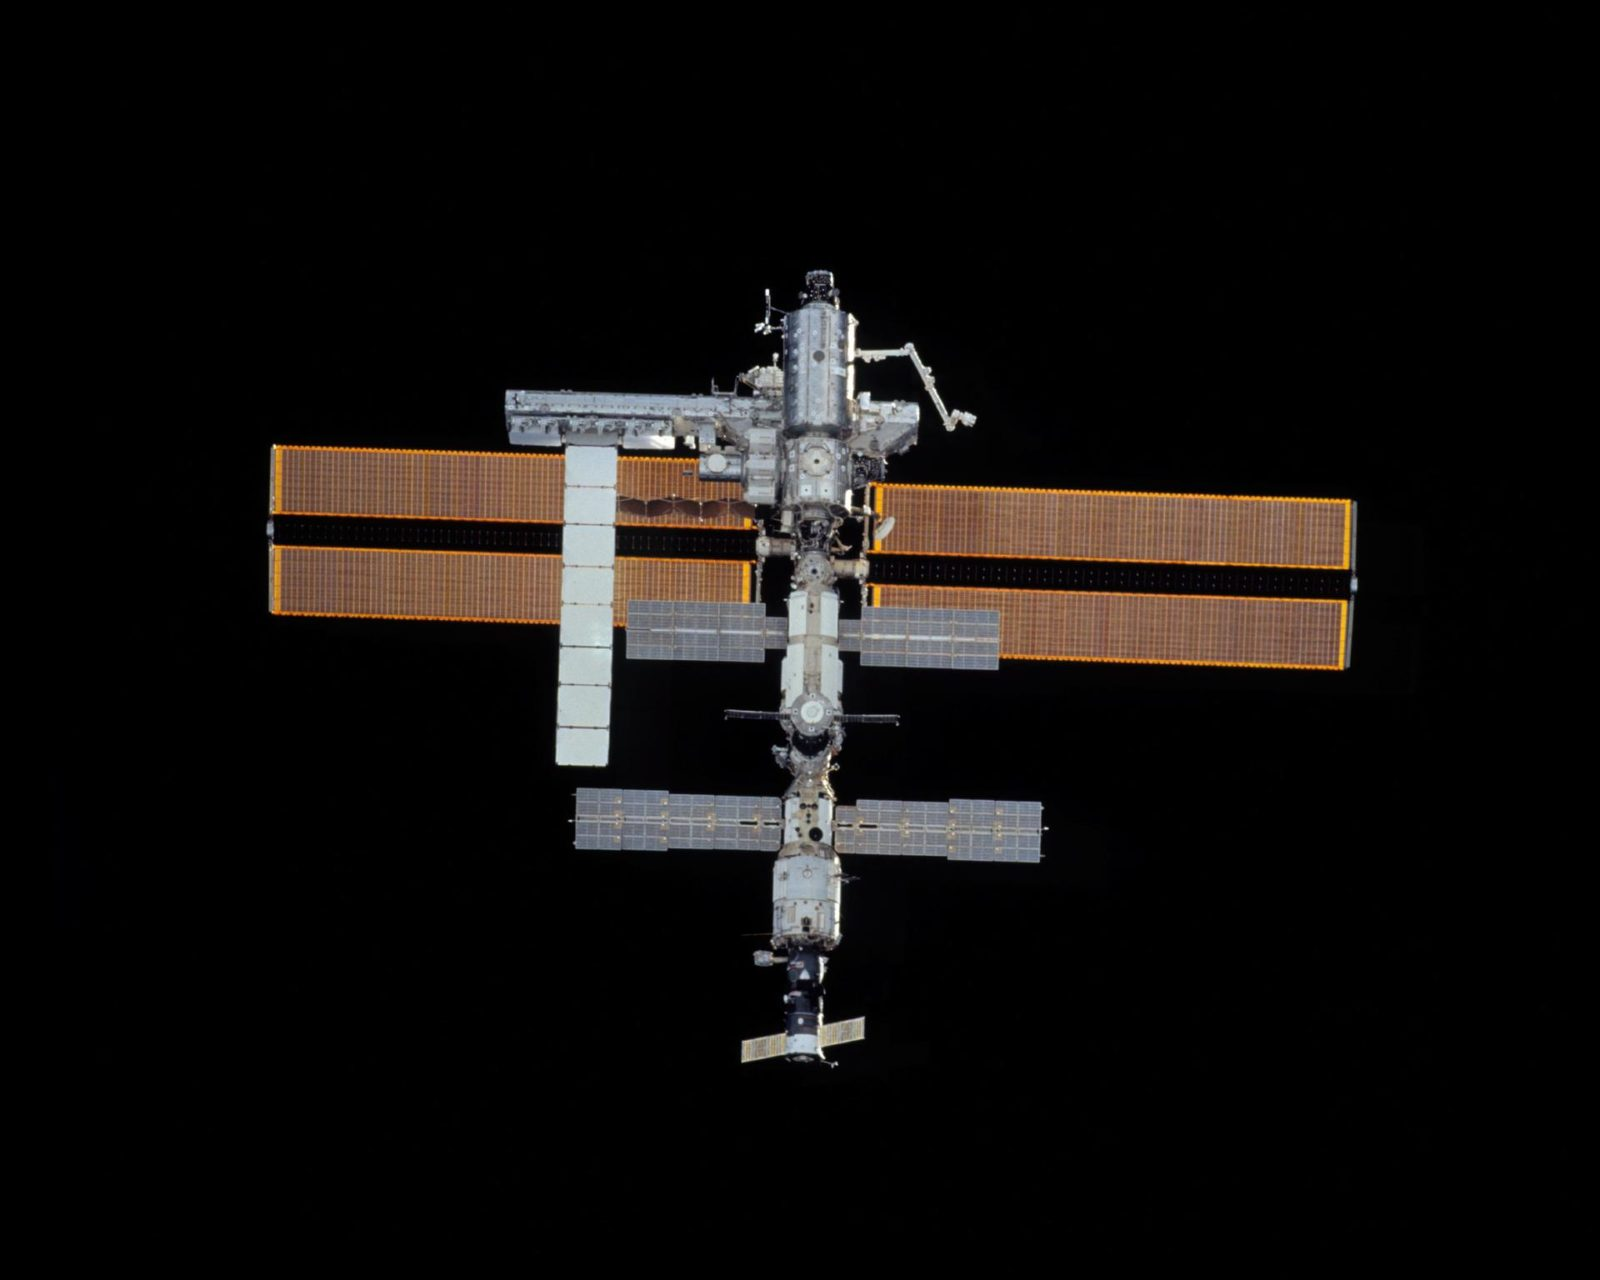 Zenith views of the ISS taken during STS-113 approach for docking